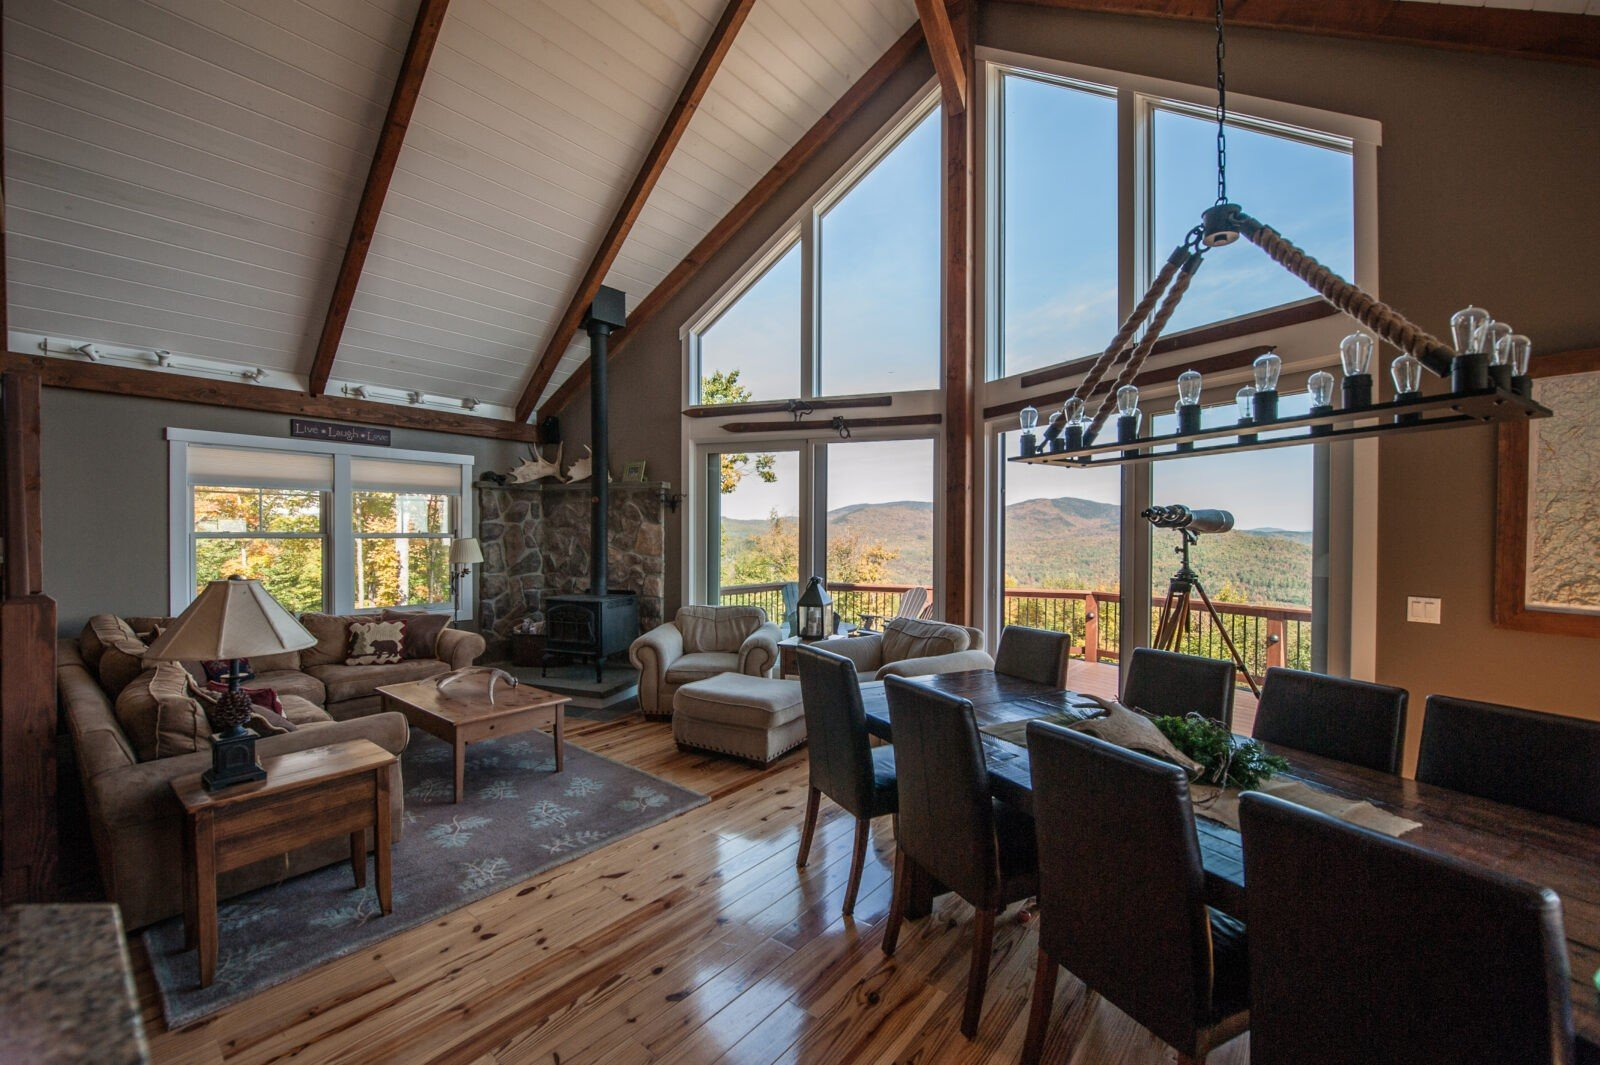 Post and Beam Mountain Lodge with stunning views. - PHOTOGRAPHY BY STEFANIE MARTIN OF NORTHPEAK DESIGN